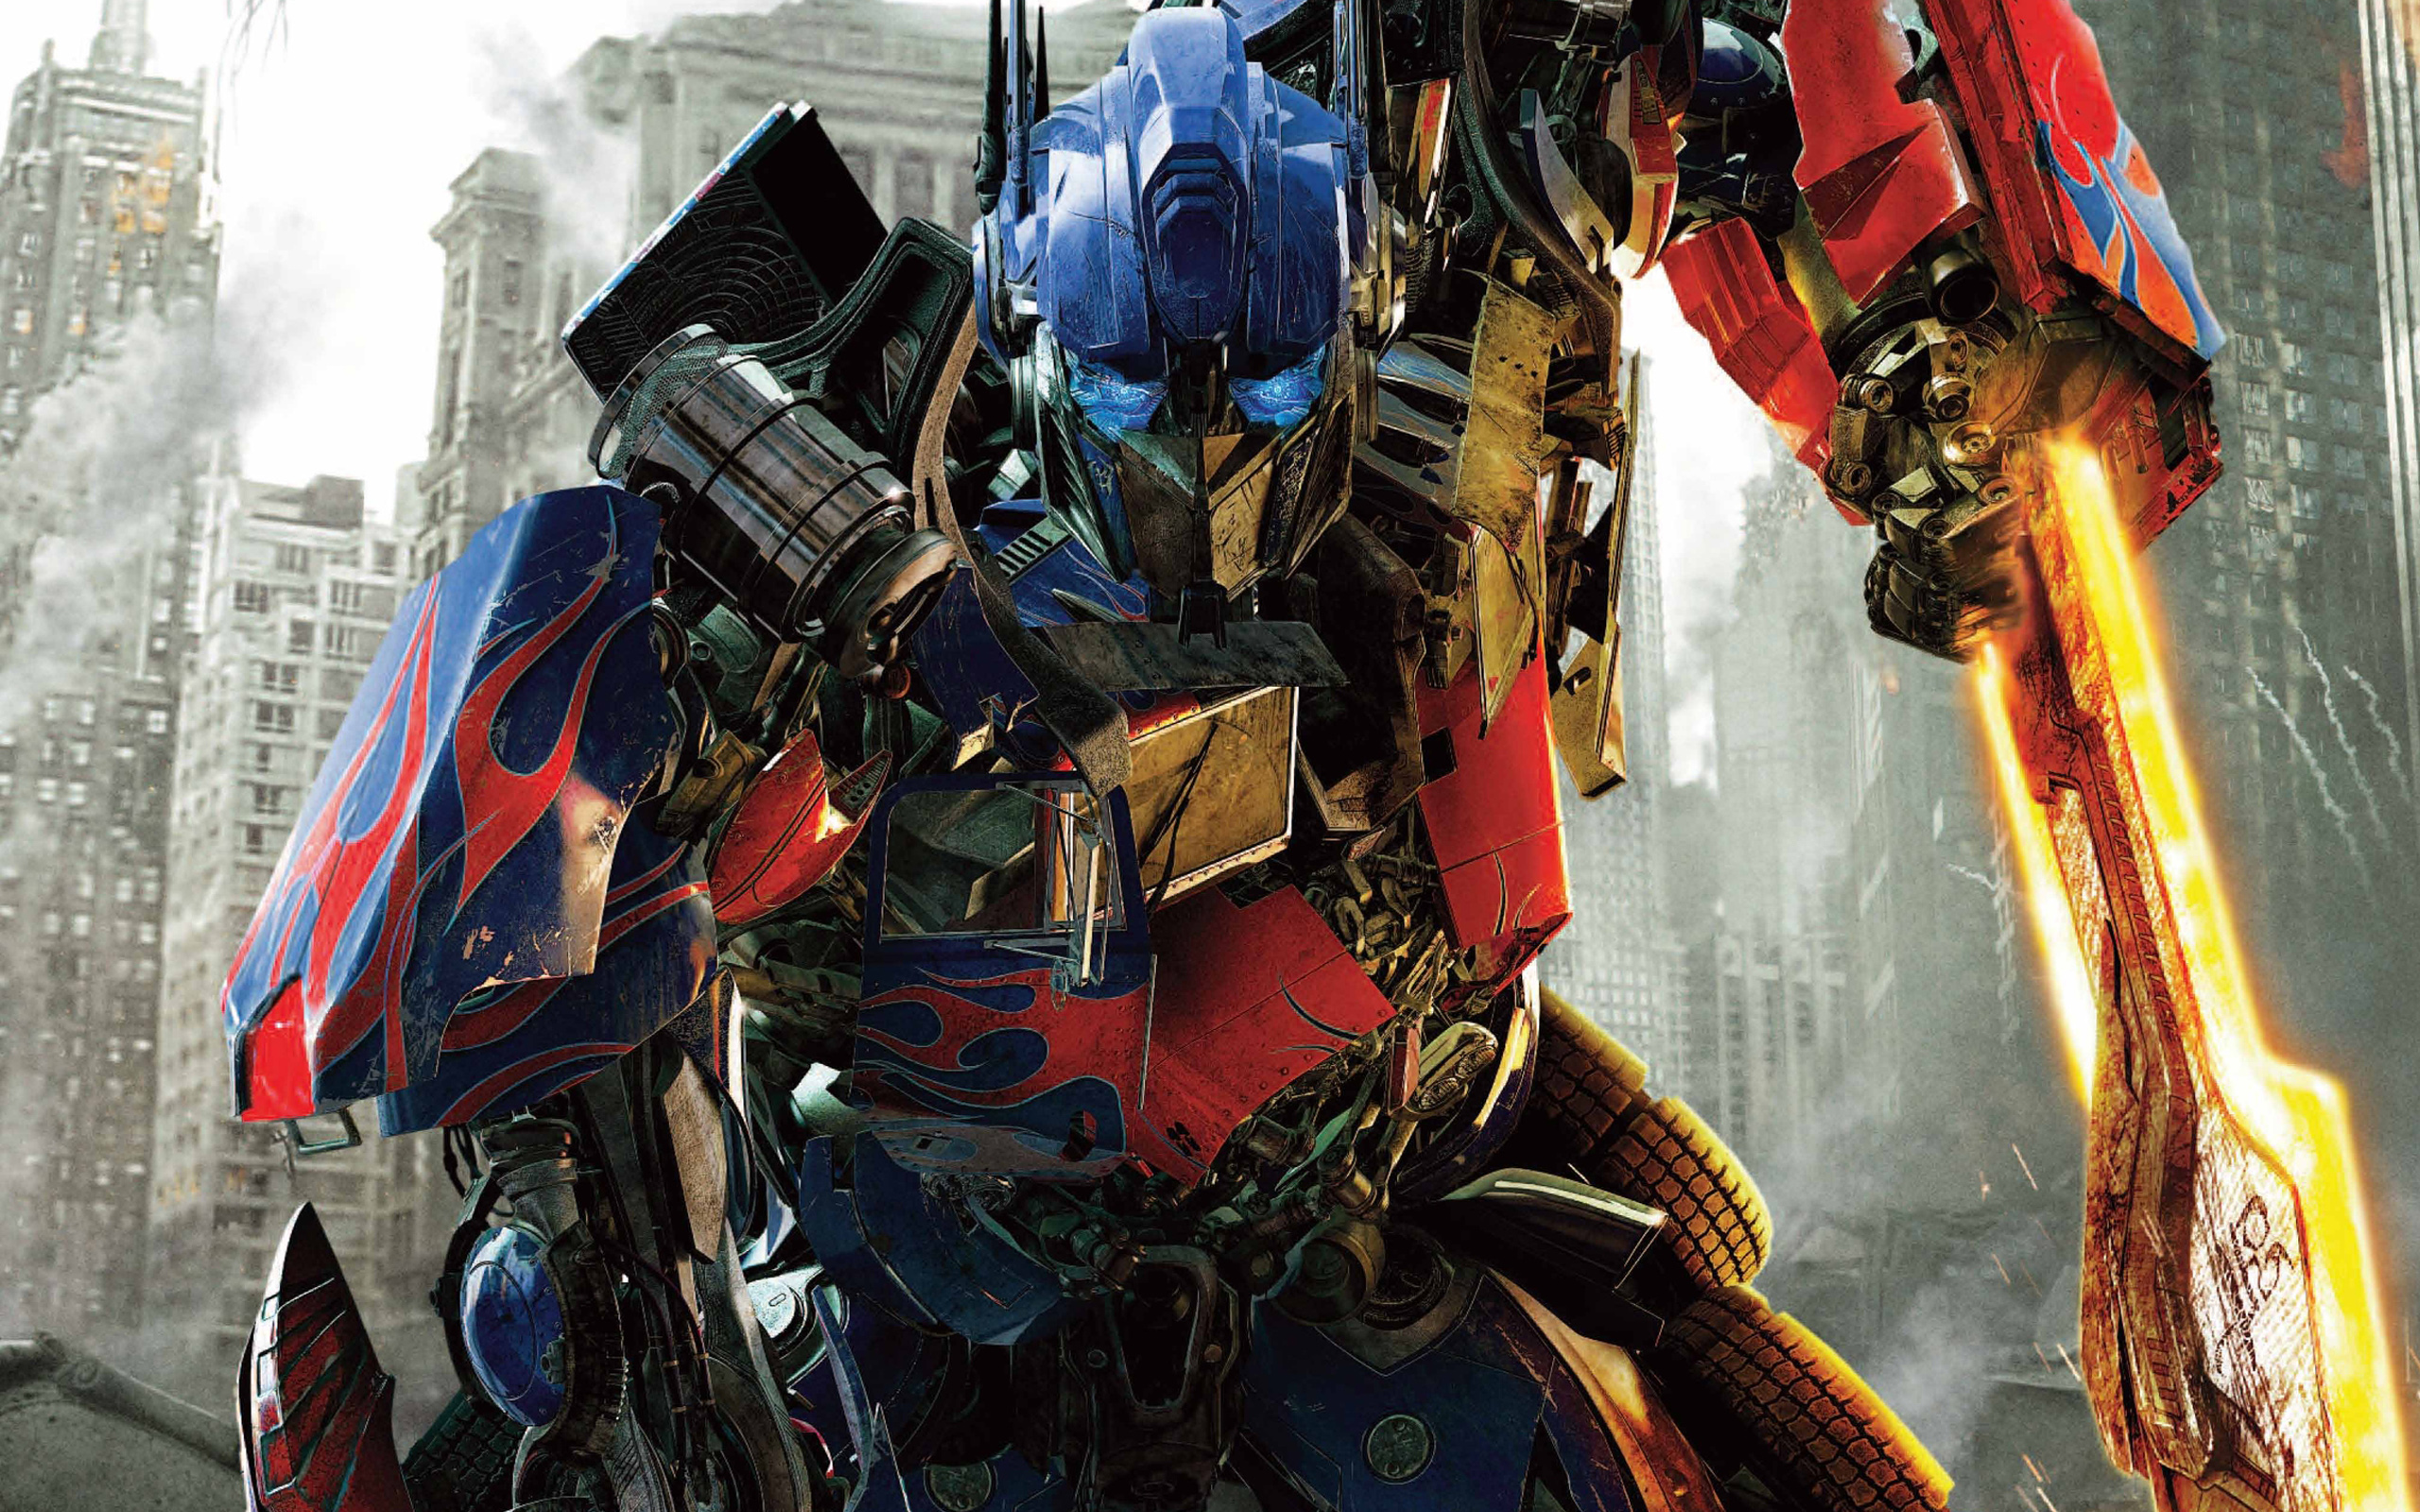 Download Transformers: Dark of the Moon Movie Streaming